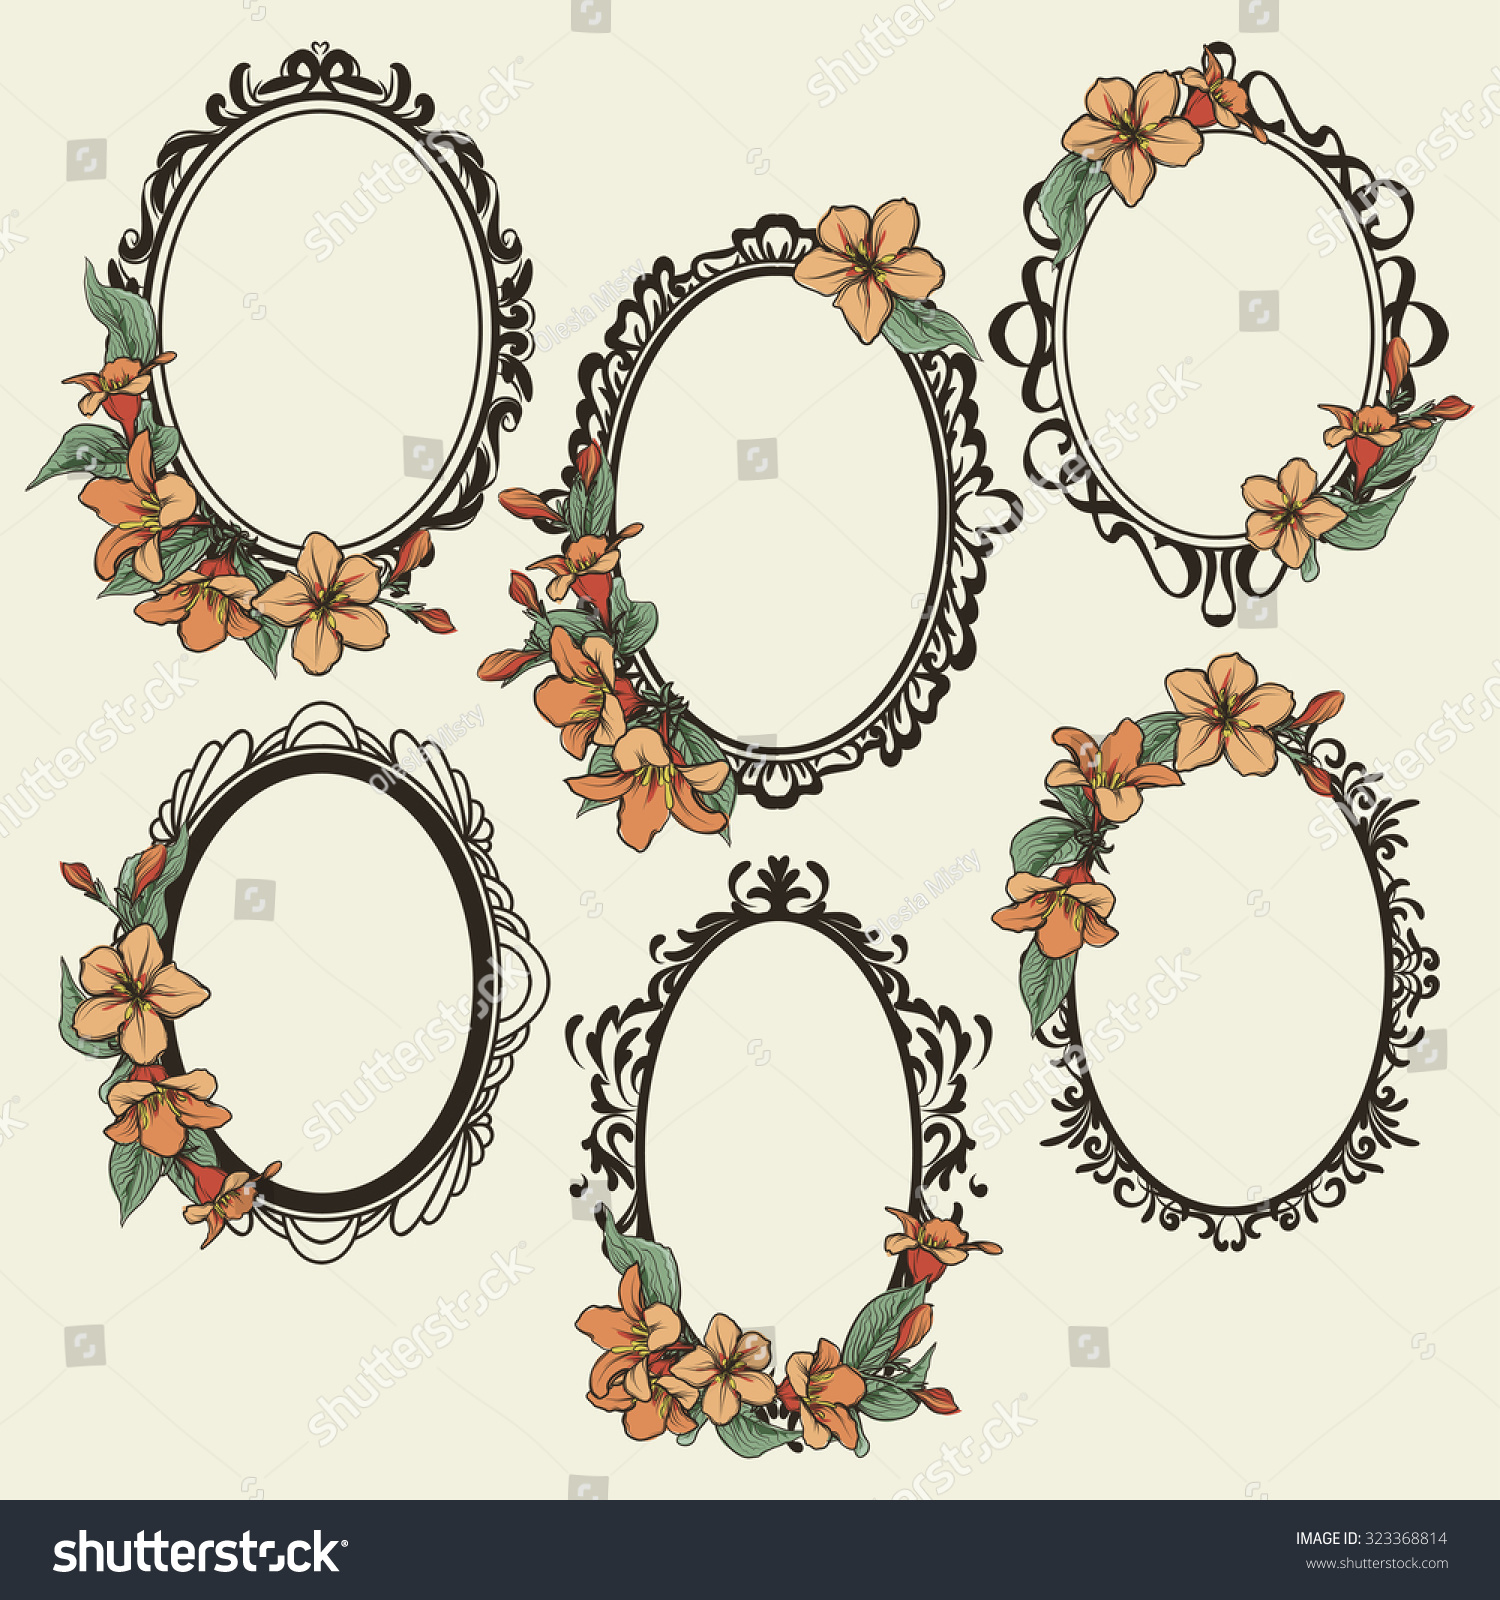 set of vintage oval frames decorated with flowers and leaves